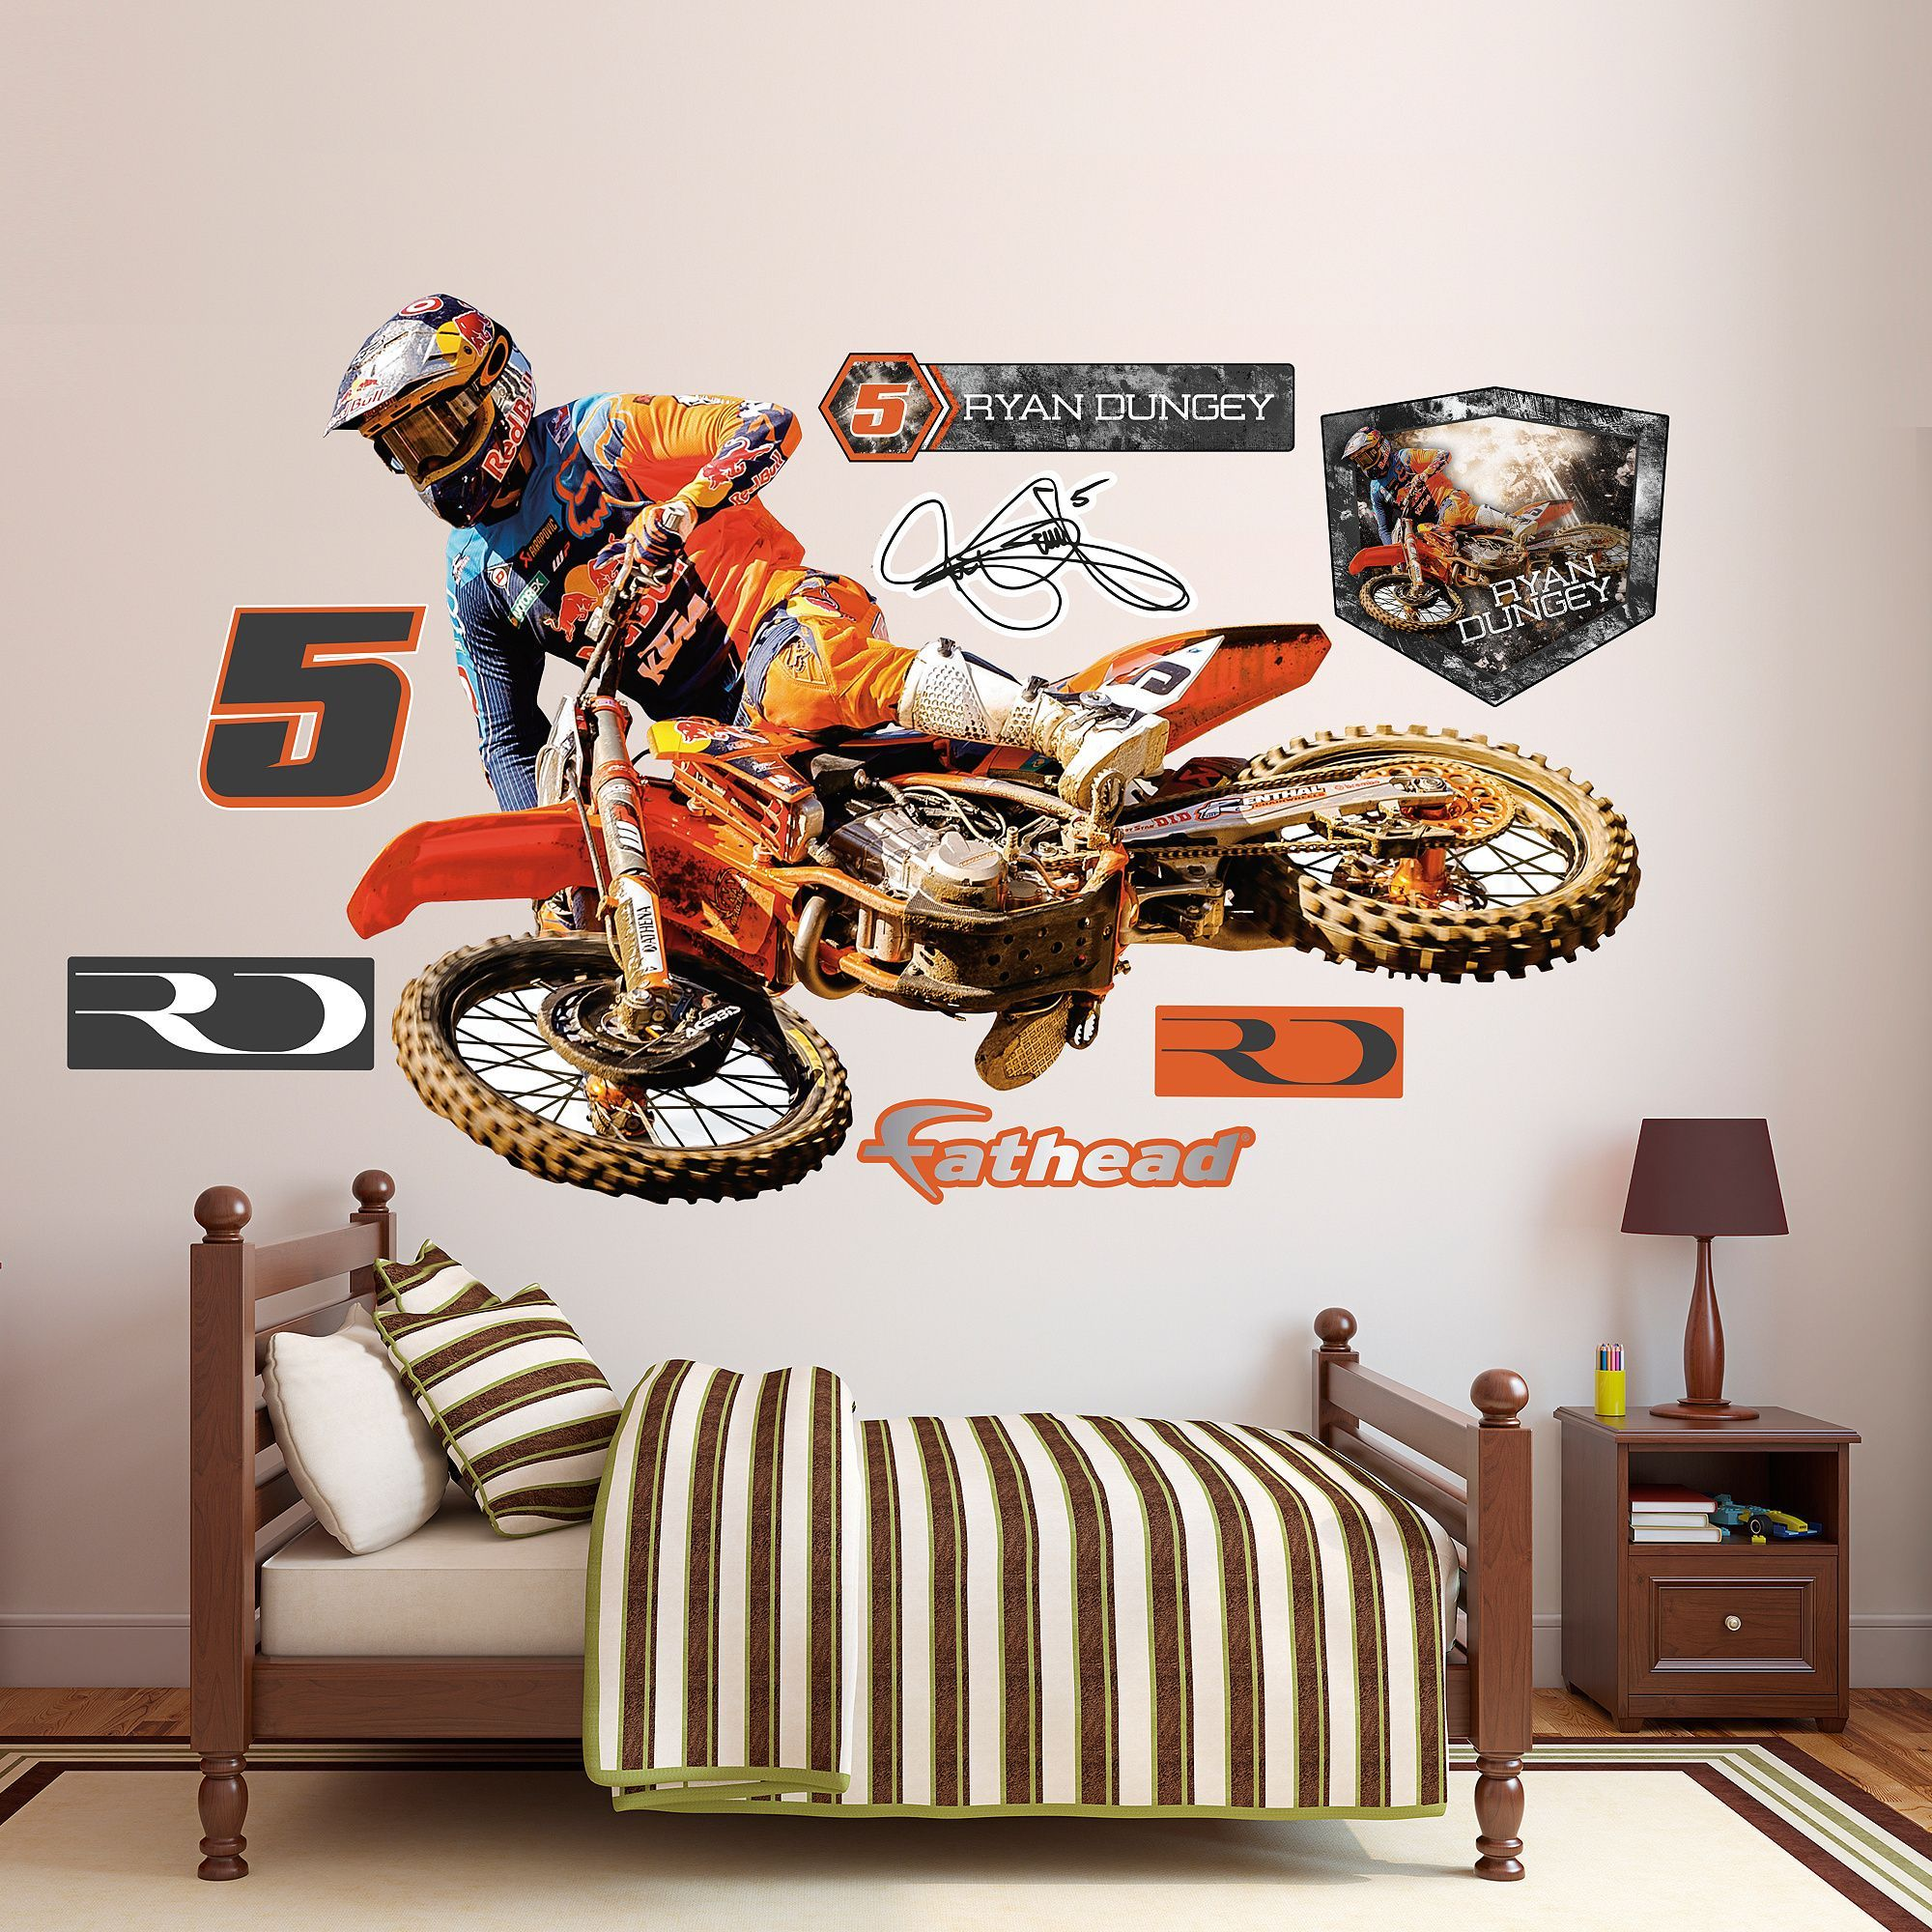 Fathead Wall Art fathead wall decals are hi-definition action images that you stick